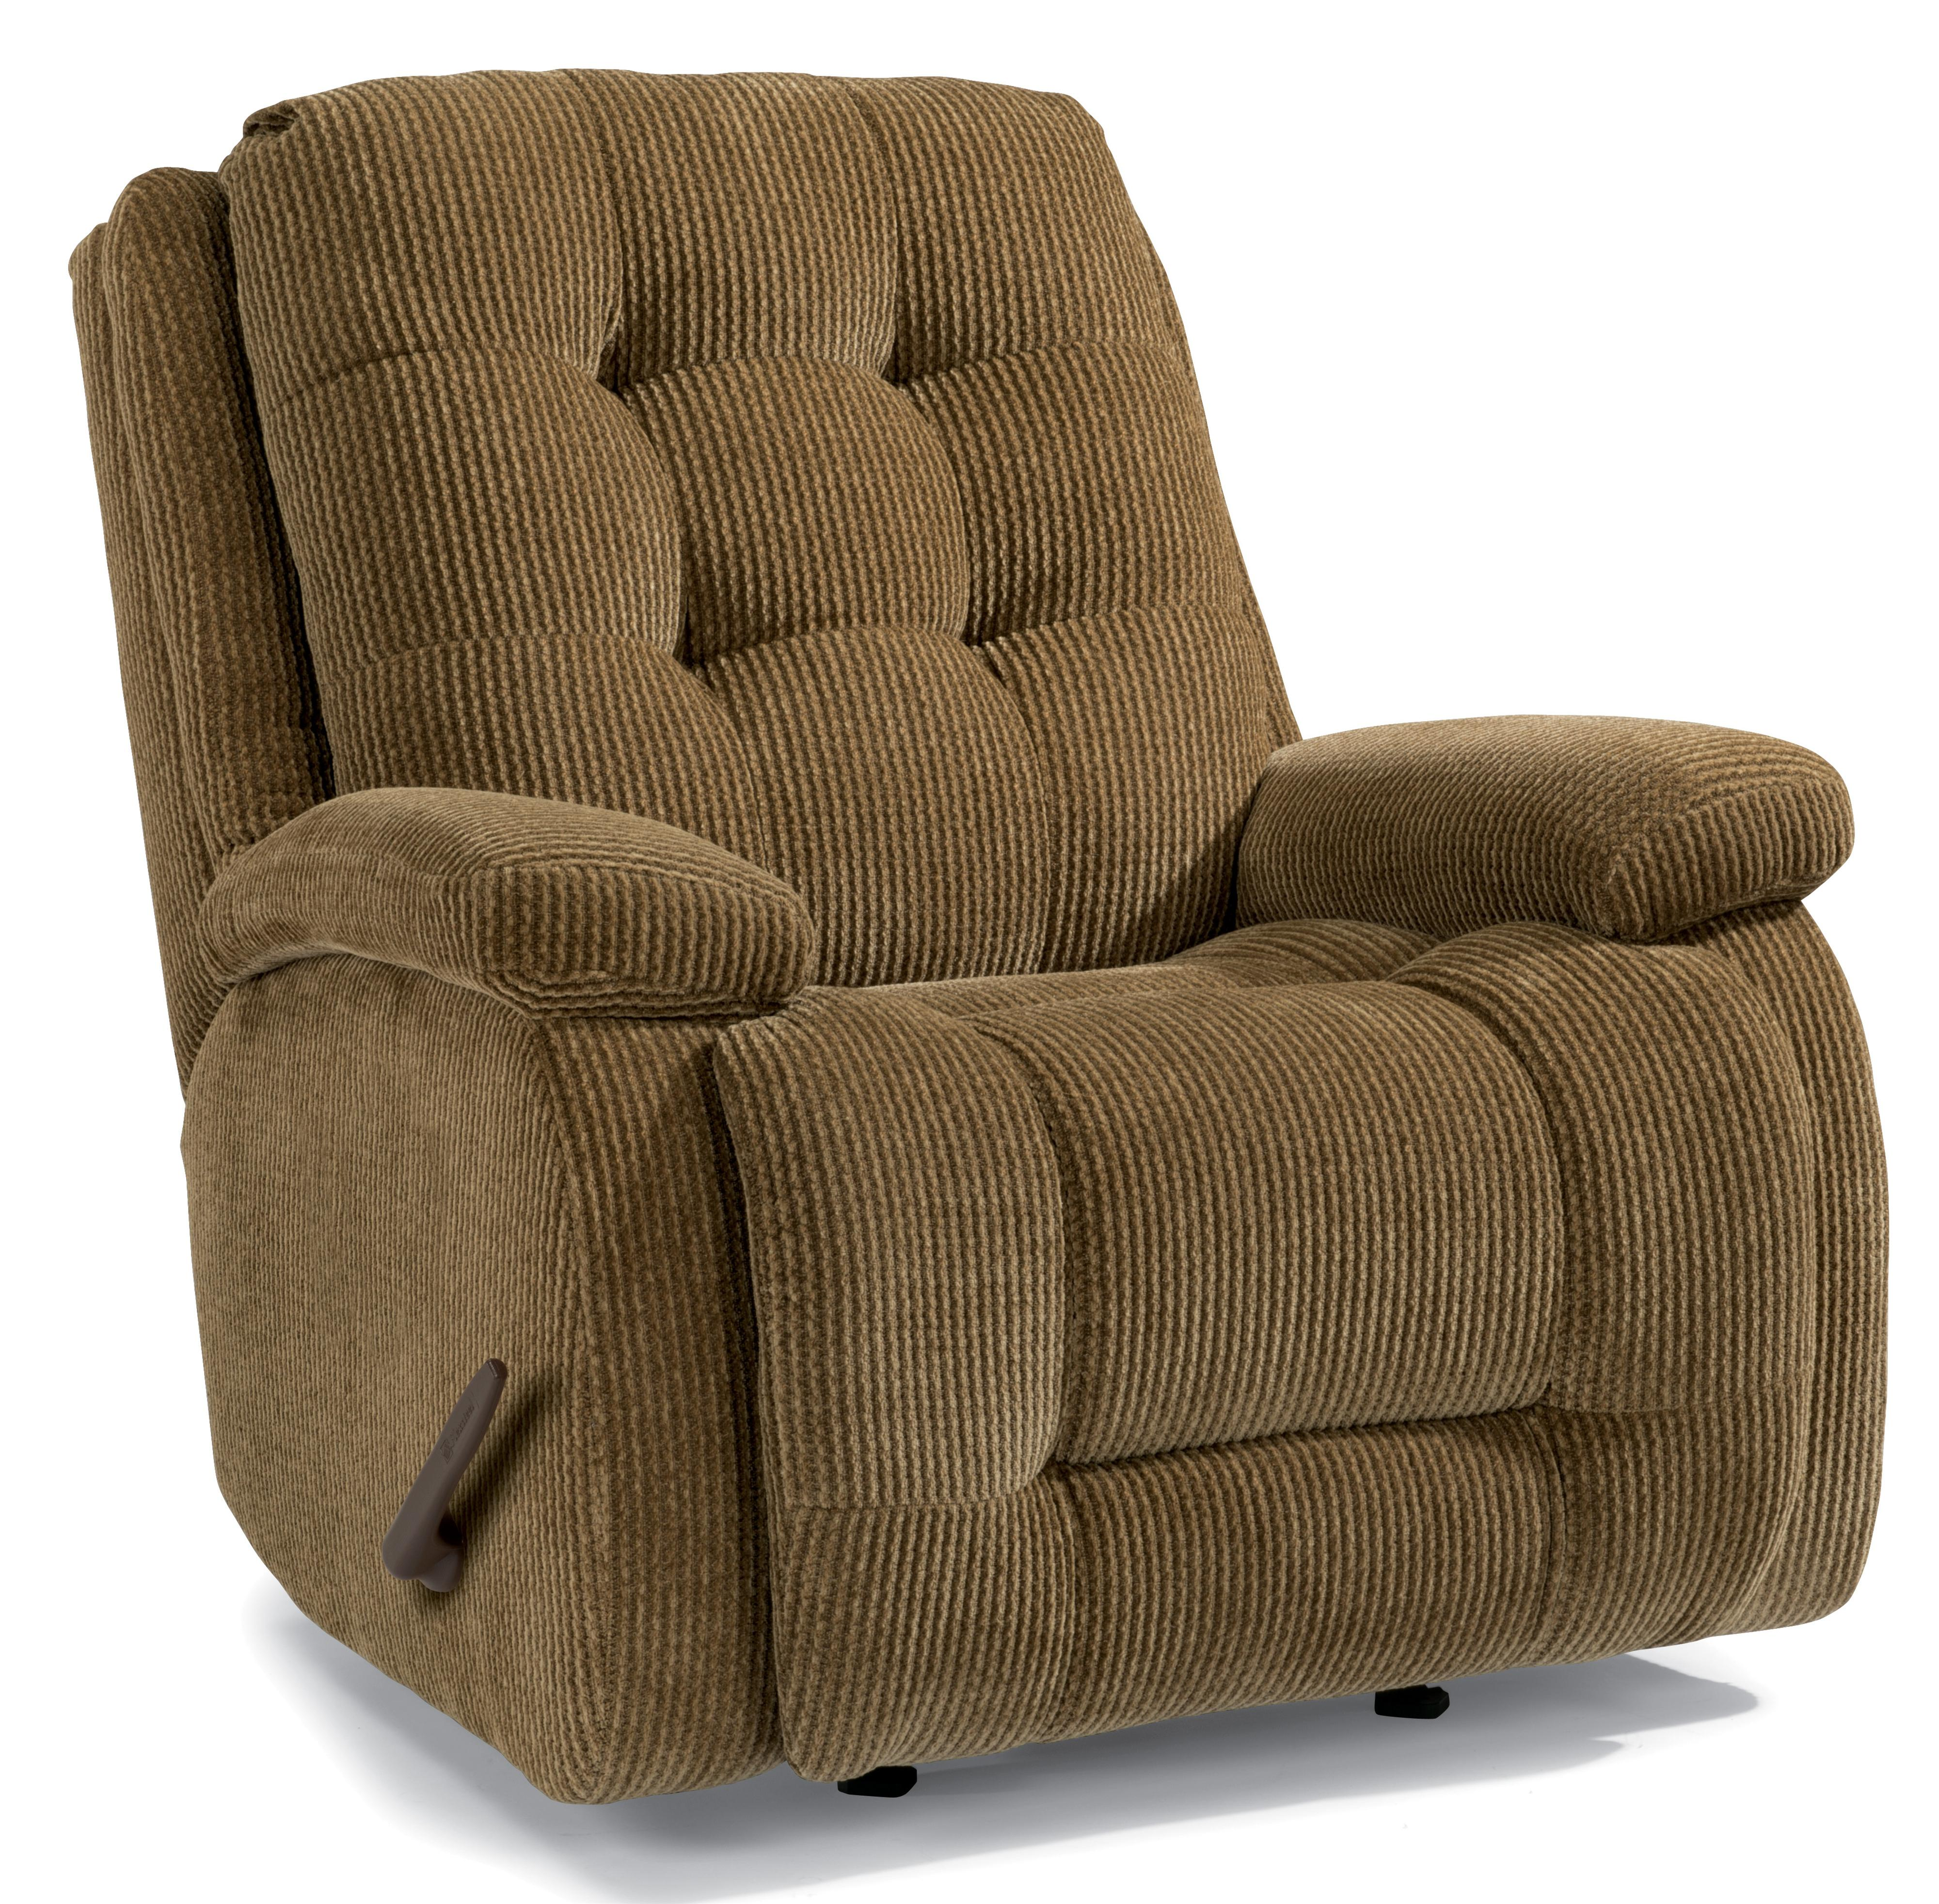 Flexsteel Accents Paxton Wall Recliner - Item Number: 4882-50-811-90